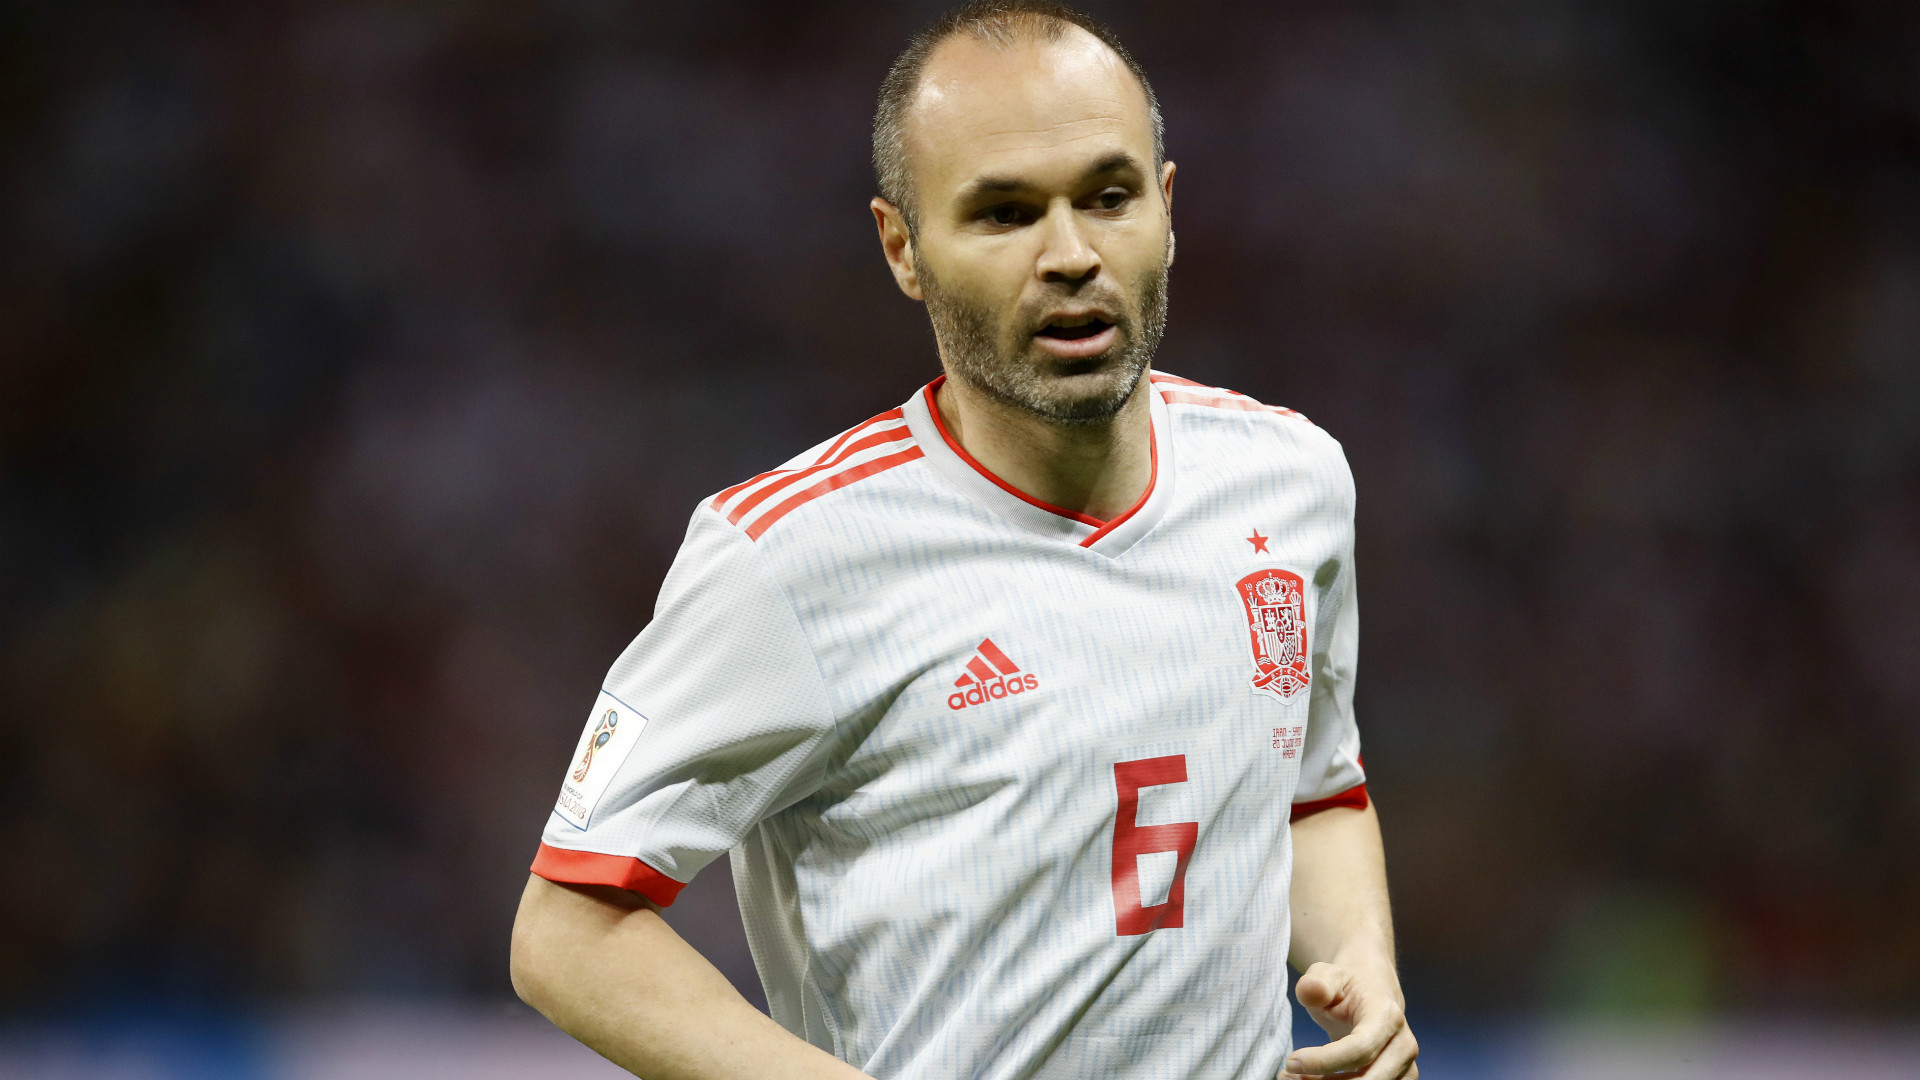 Andres Iniesta Iran Spain World Cup 2018